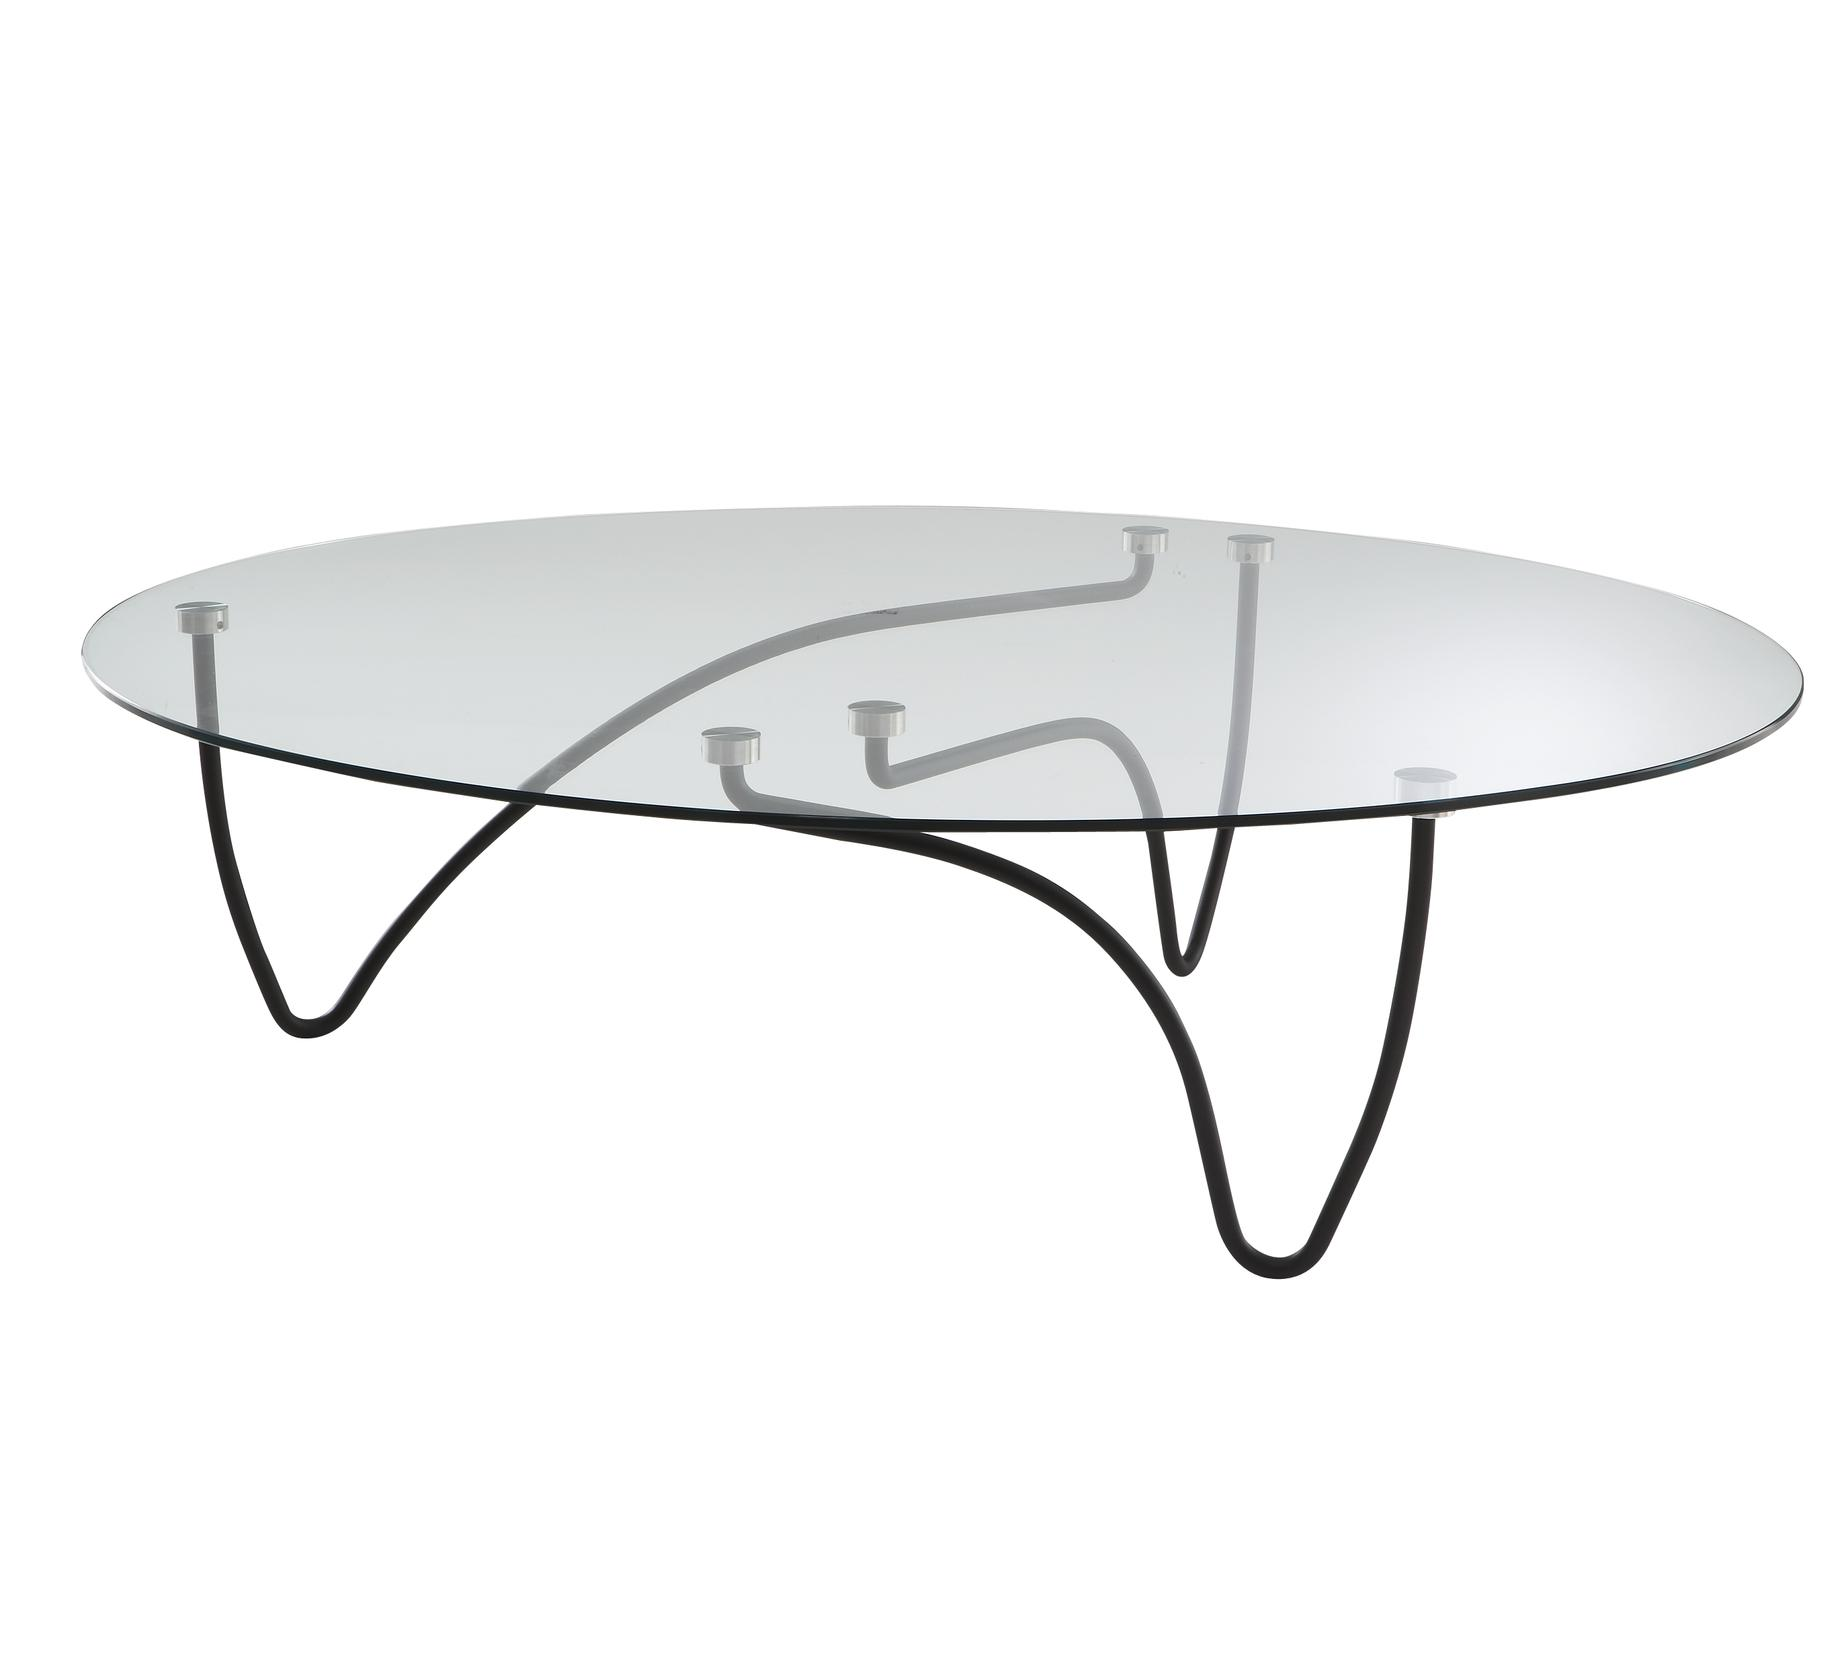 rythme occasional tables designer angie anakis ligne roset. Black Bedroom Furniture Sets. Home Design Ideas